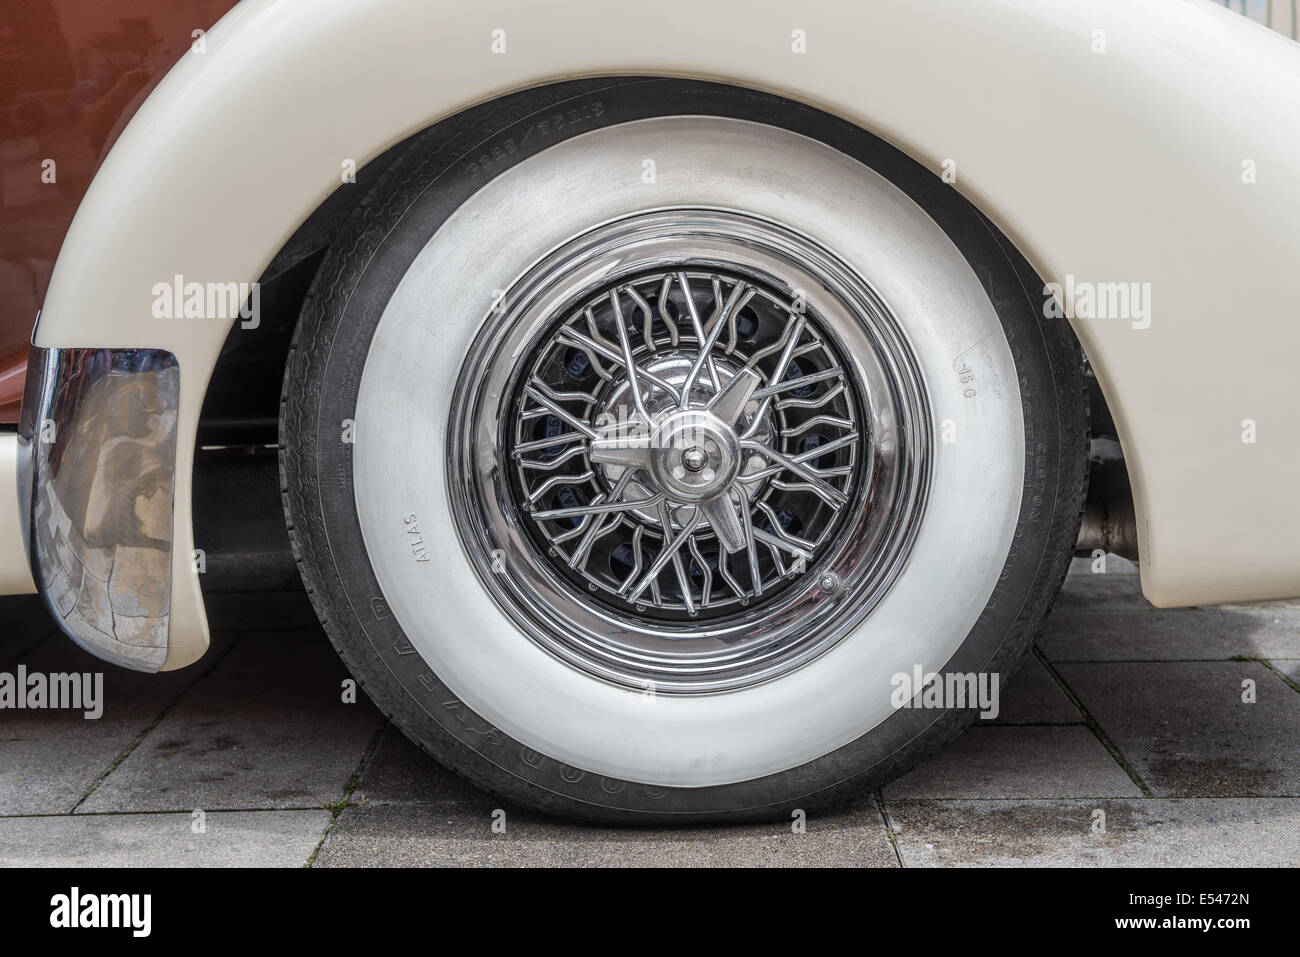 Vintage tire on the Auburn 851 Supercharged speedster - Stock Image